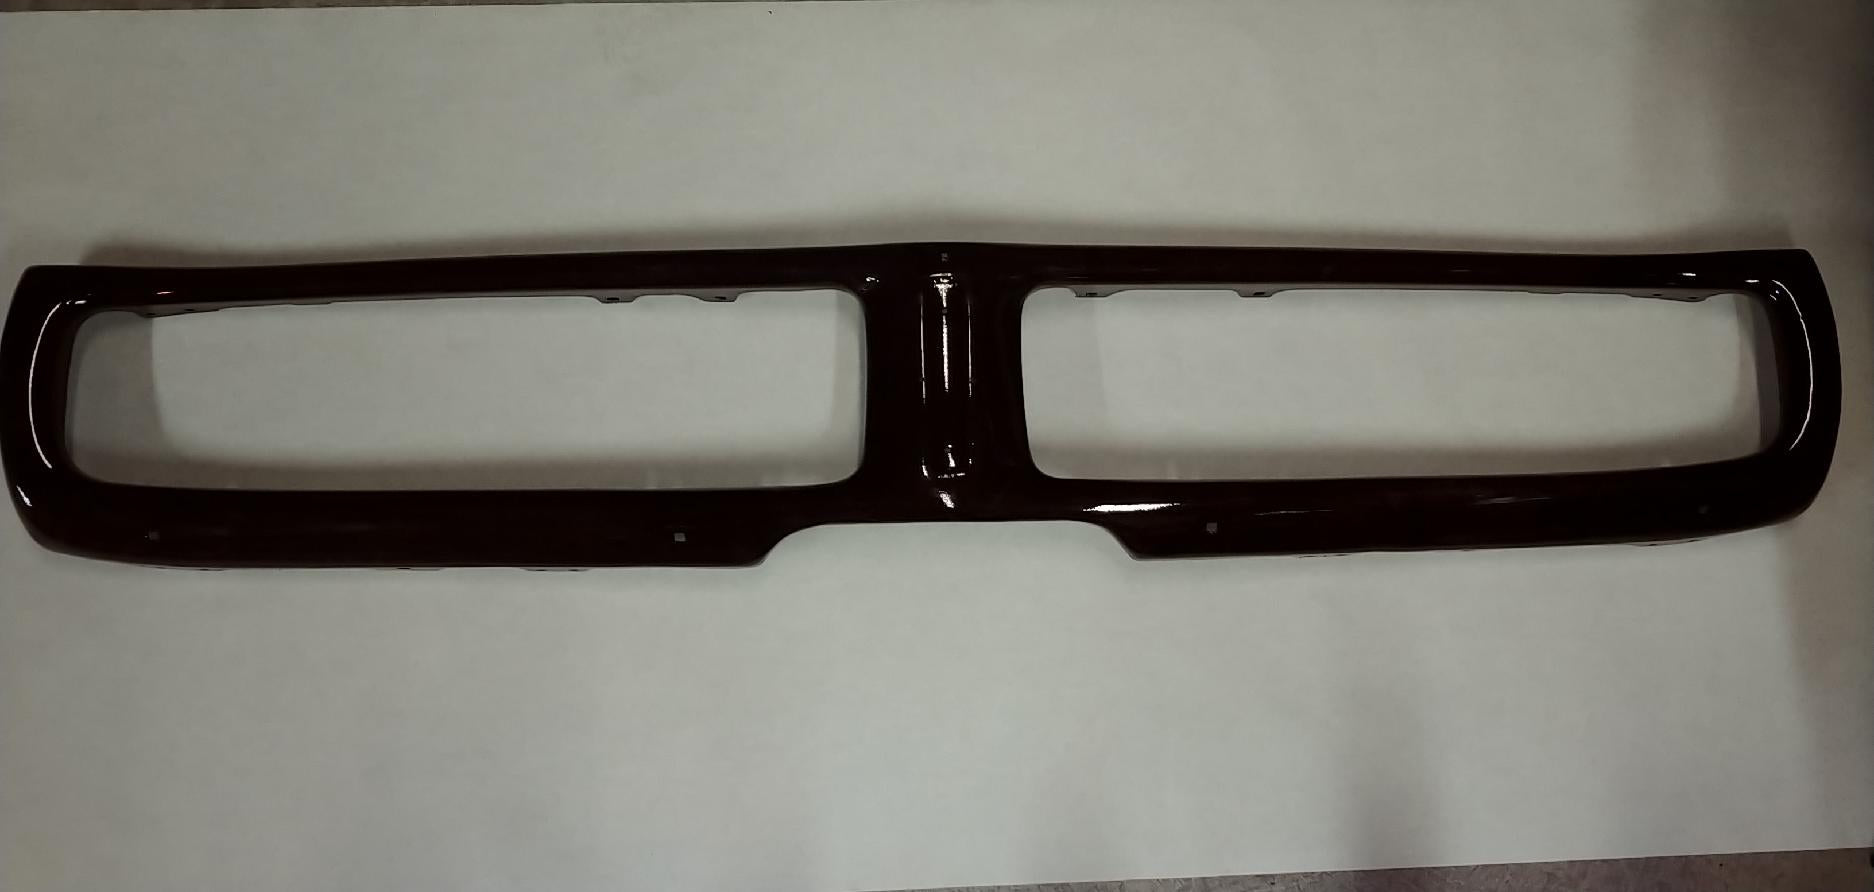 Elastomeric Bumper For 1971 Dodge Charger Super bee